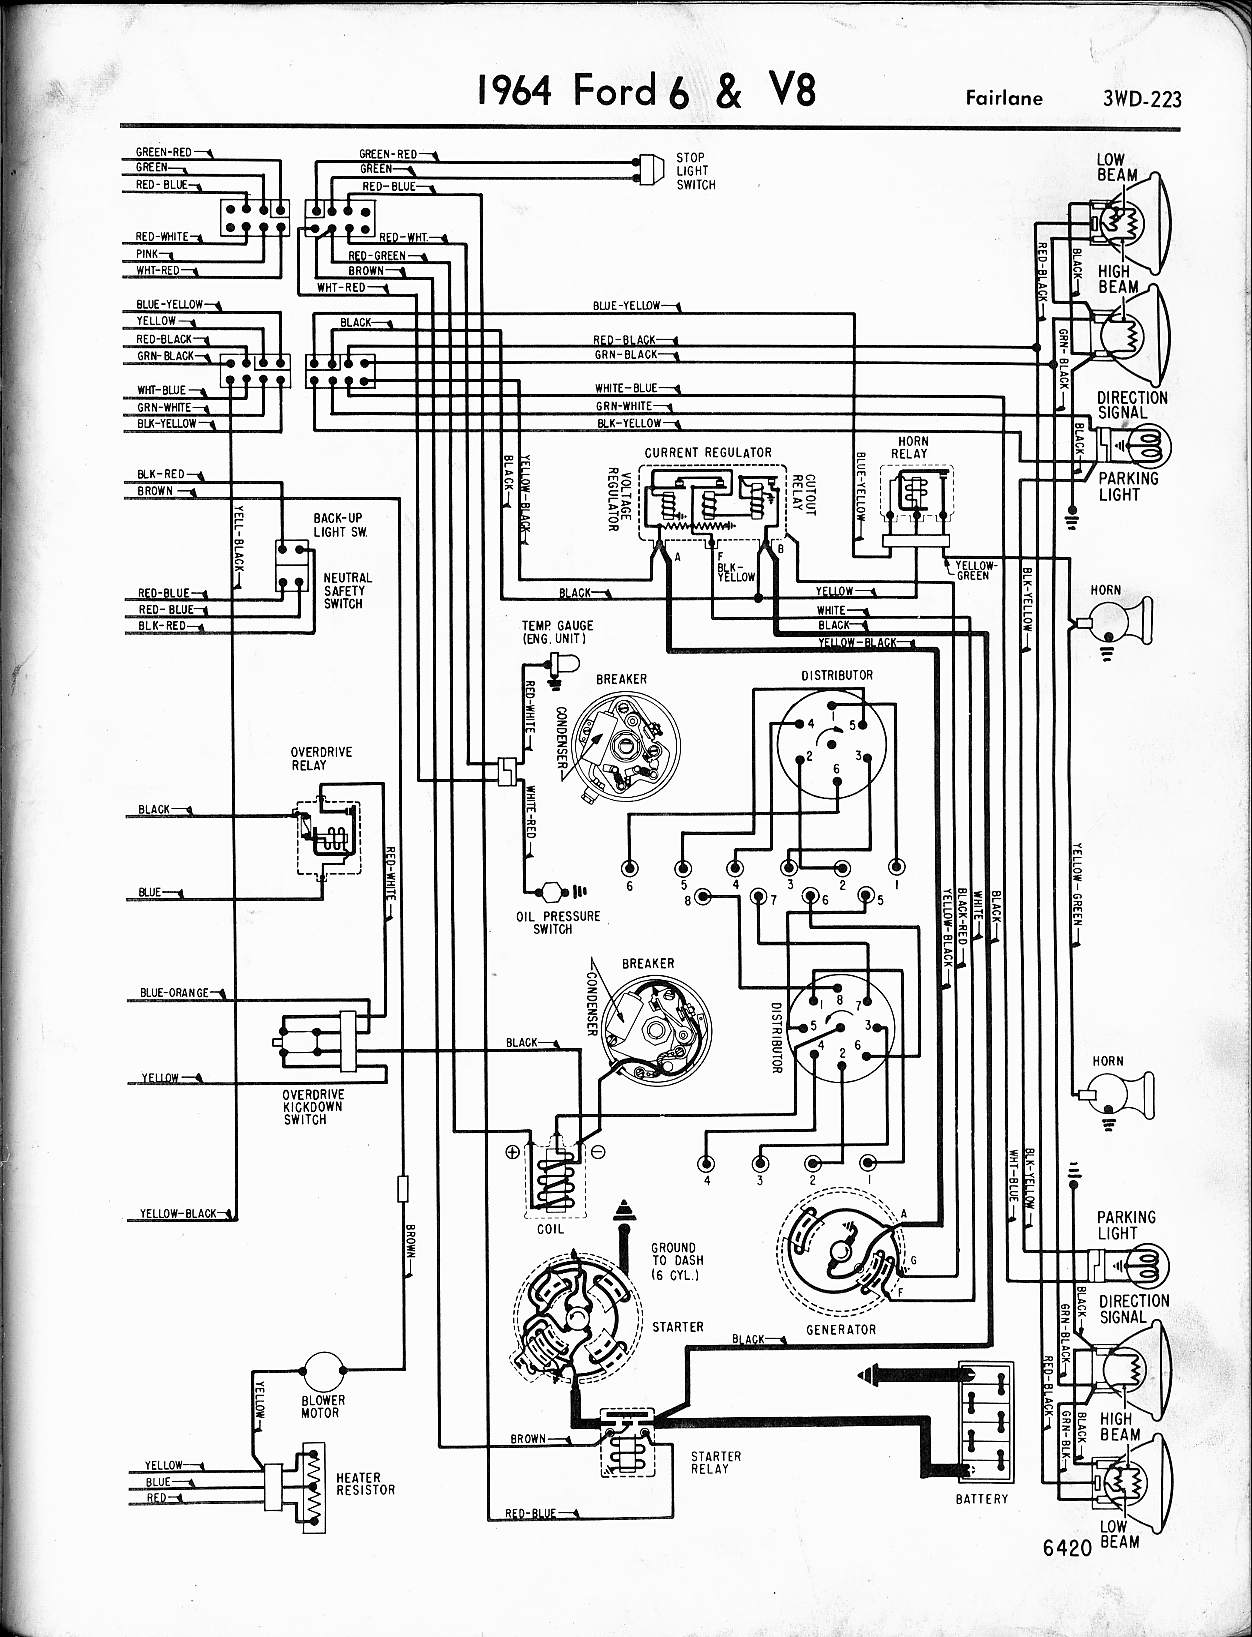 1962 Dodge Lancer Wiring Diagram Worksheet And 1964 Dart 57 65 Ford Diagrams Rh Oldcarmanualproject Com 1965 1963